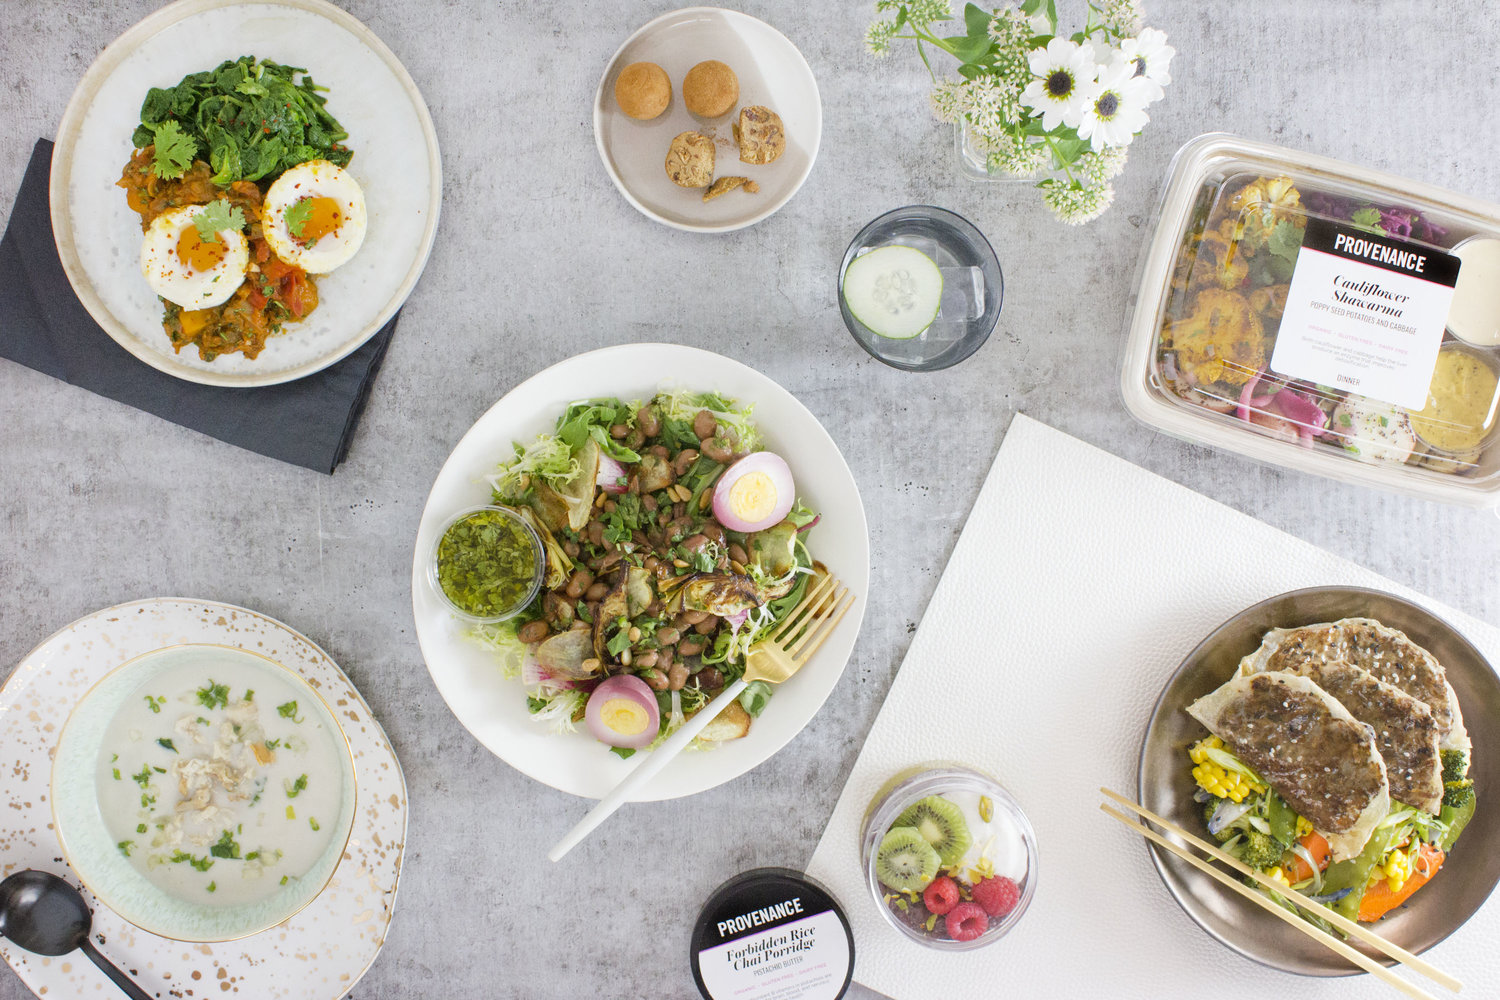 Organic Prepared Meals Cleanse Programs For Busy New Yorkers